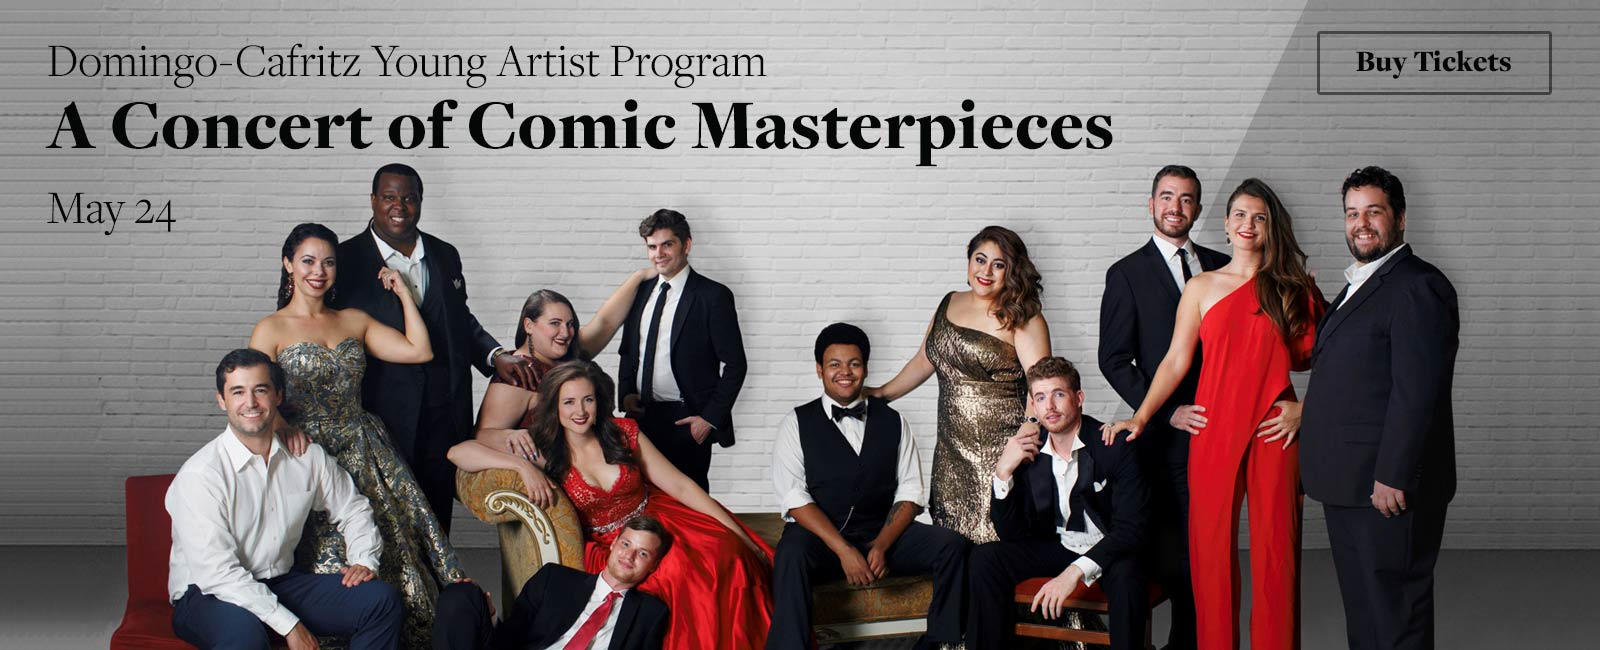 Domingo-Cafritz Young Artist Program: A Concert of Comic Masterpieces